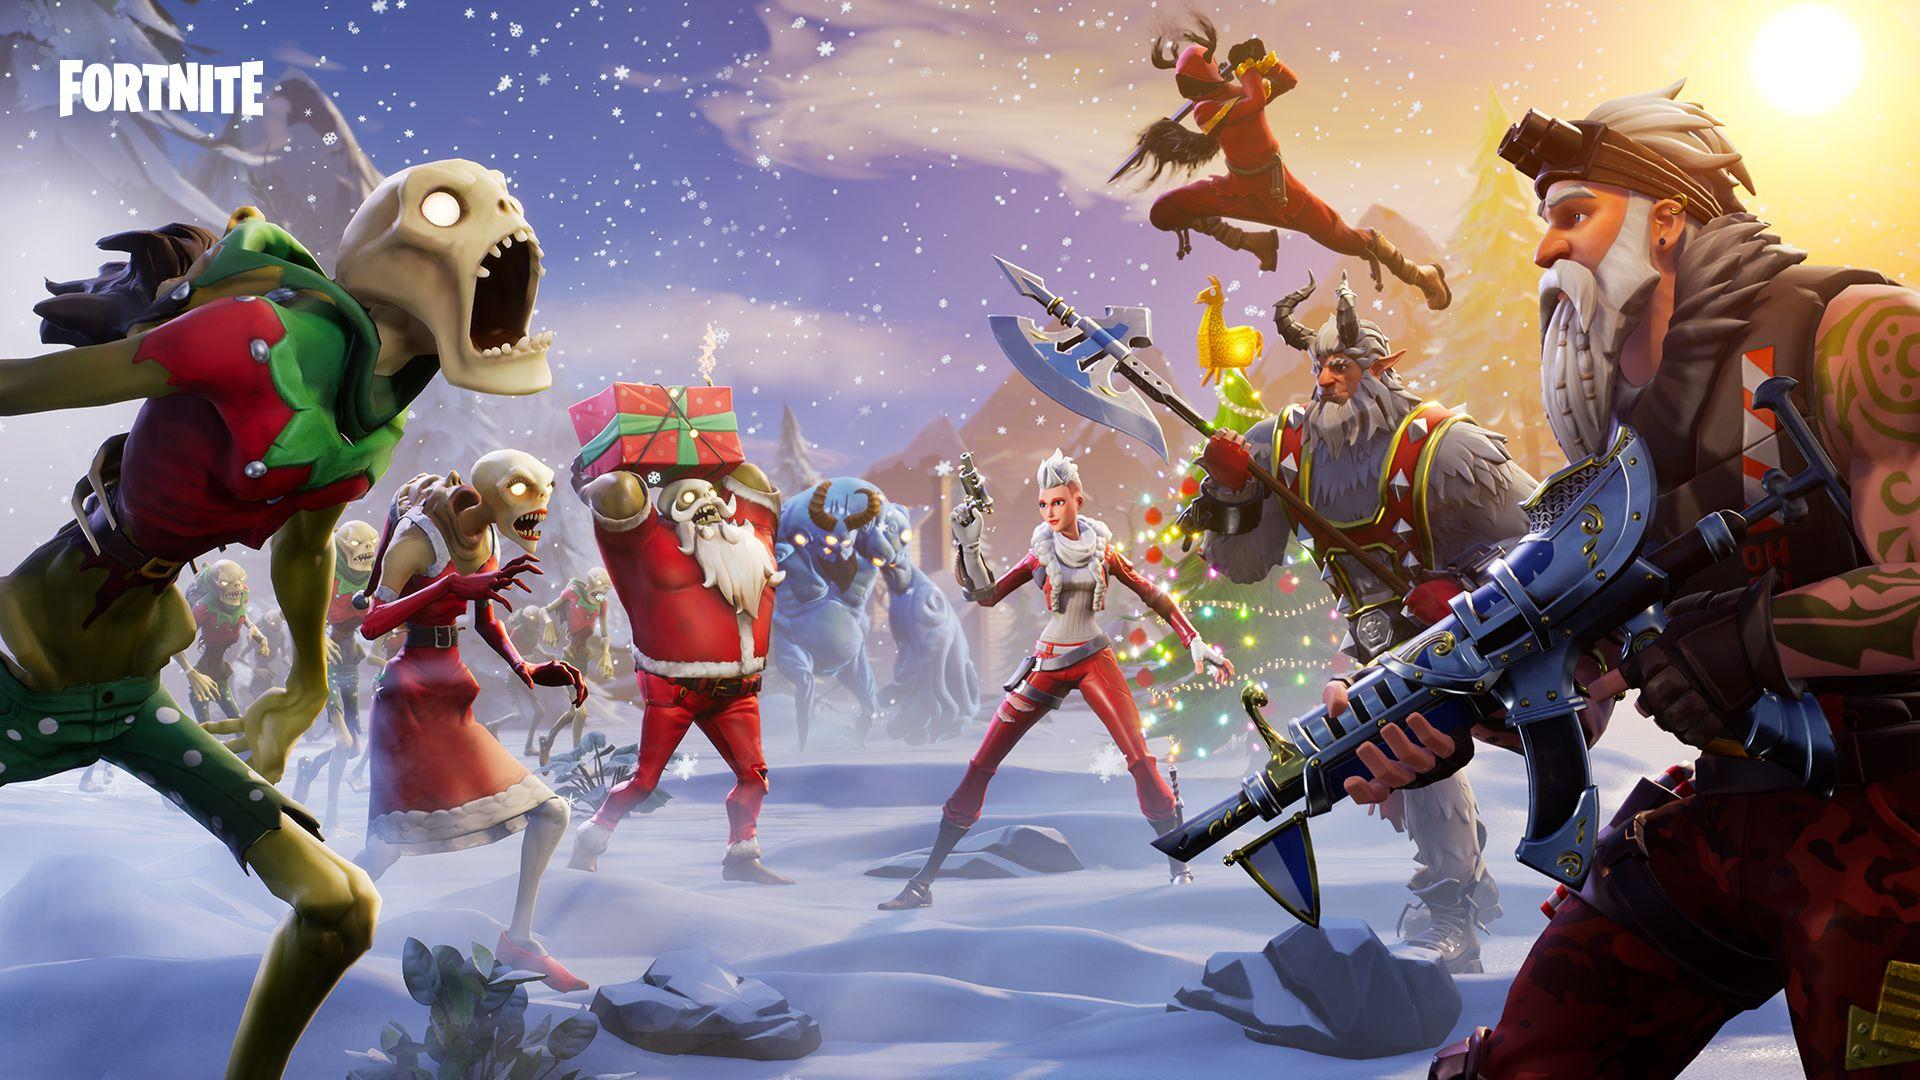 Fortnite Save the World v7.10: Frostnite, 14 Free Upgrade Llamas and